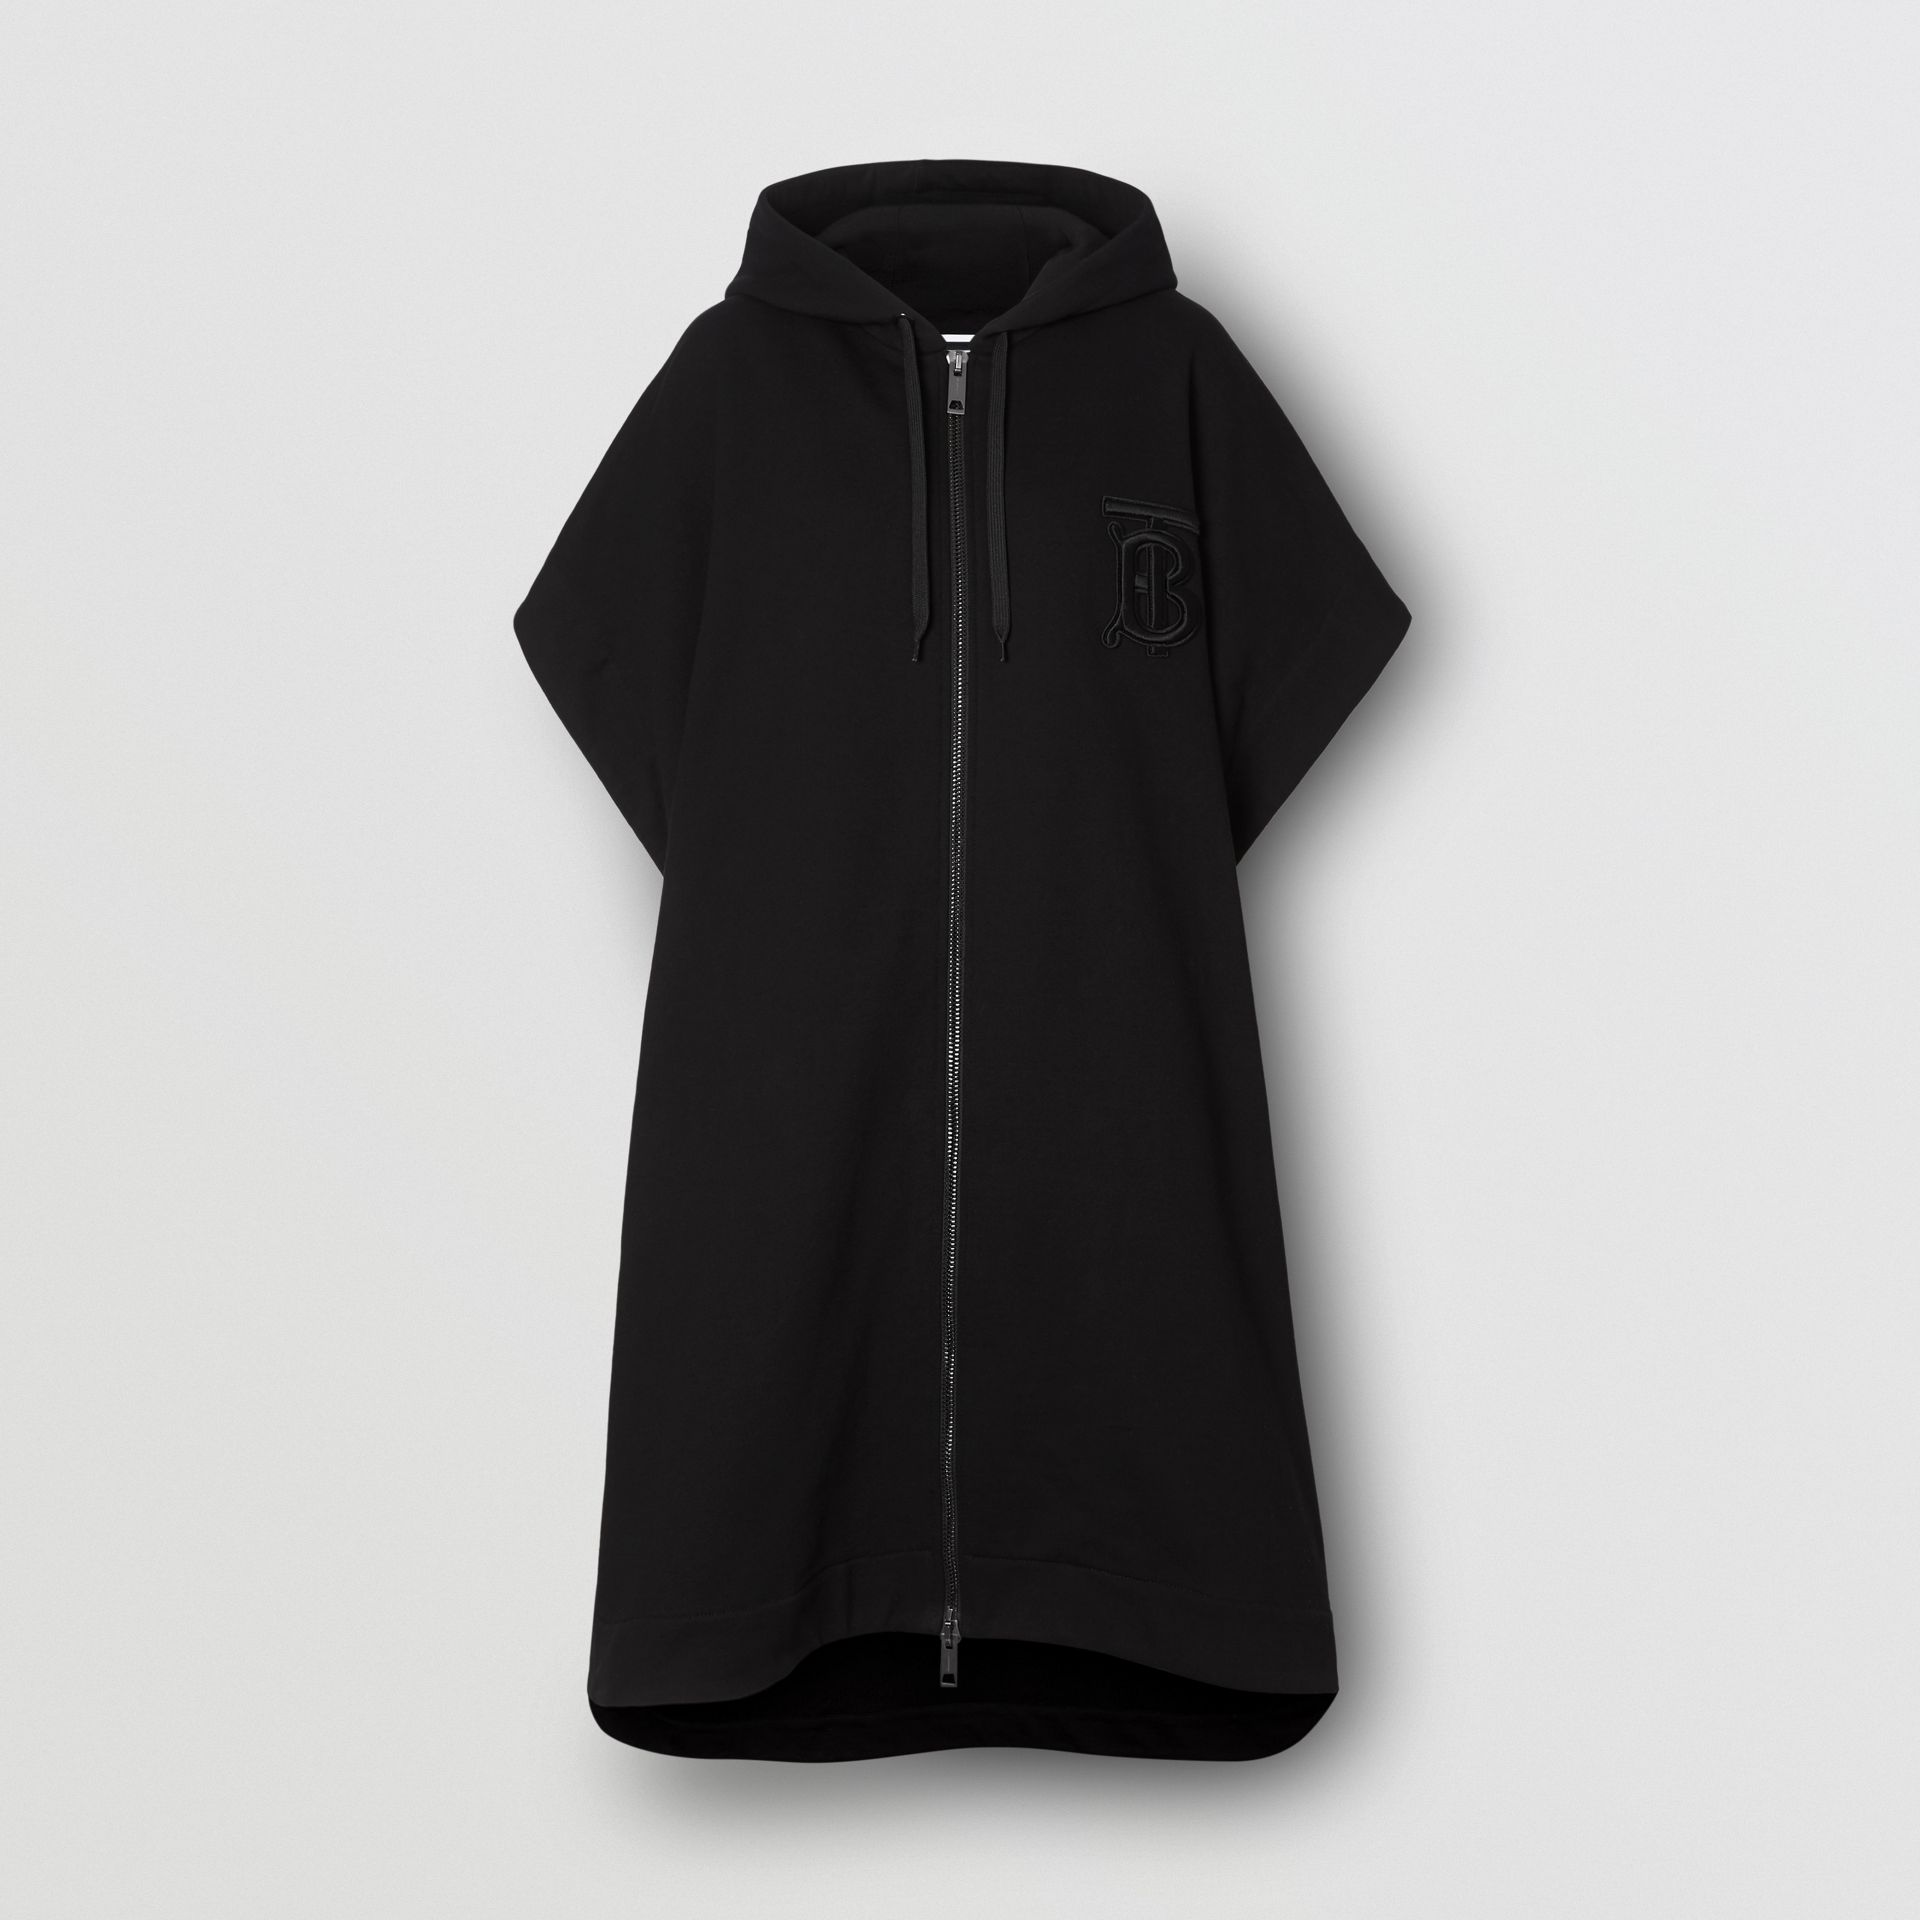 Monogram Motif Cotton Oversized Hooded Poncho in Black | Burberry - gallery image 3